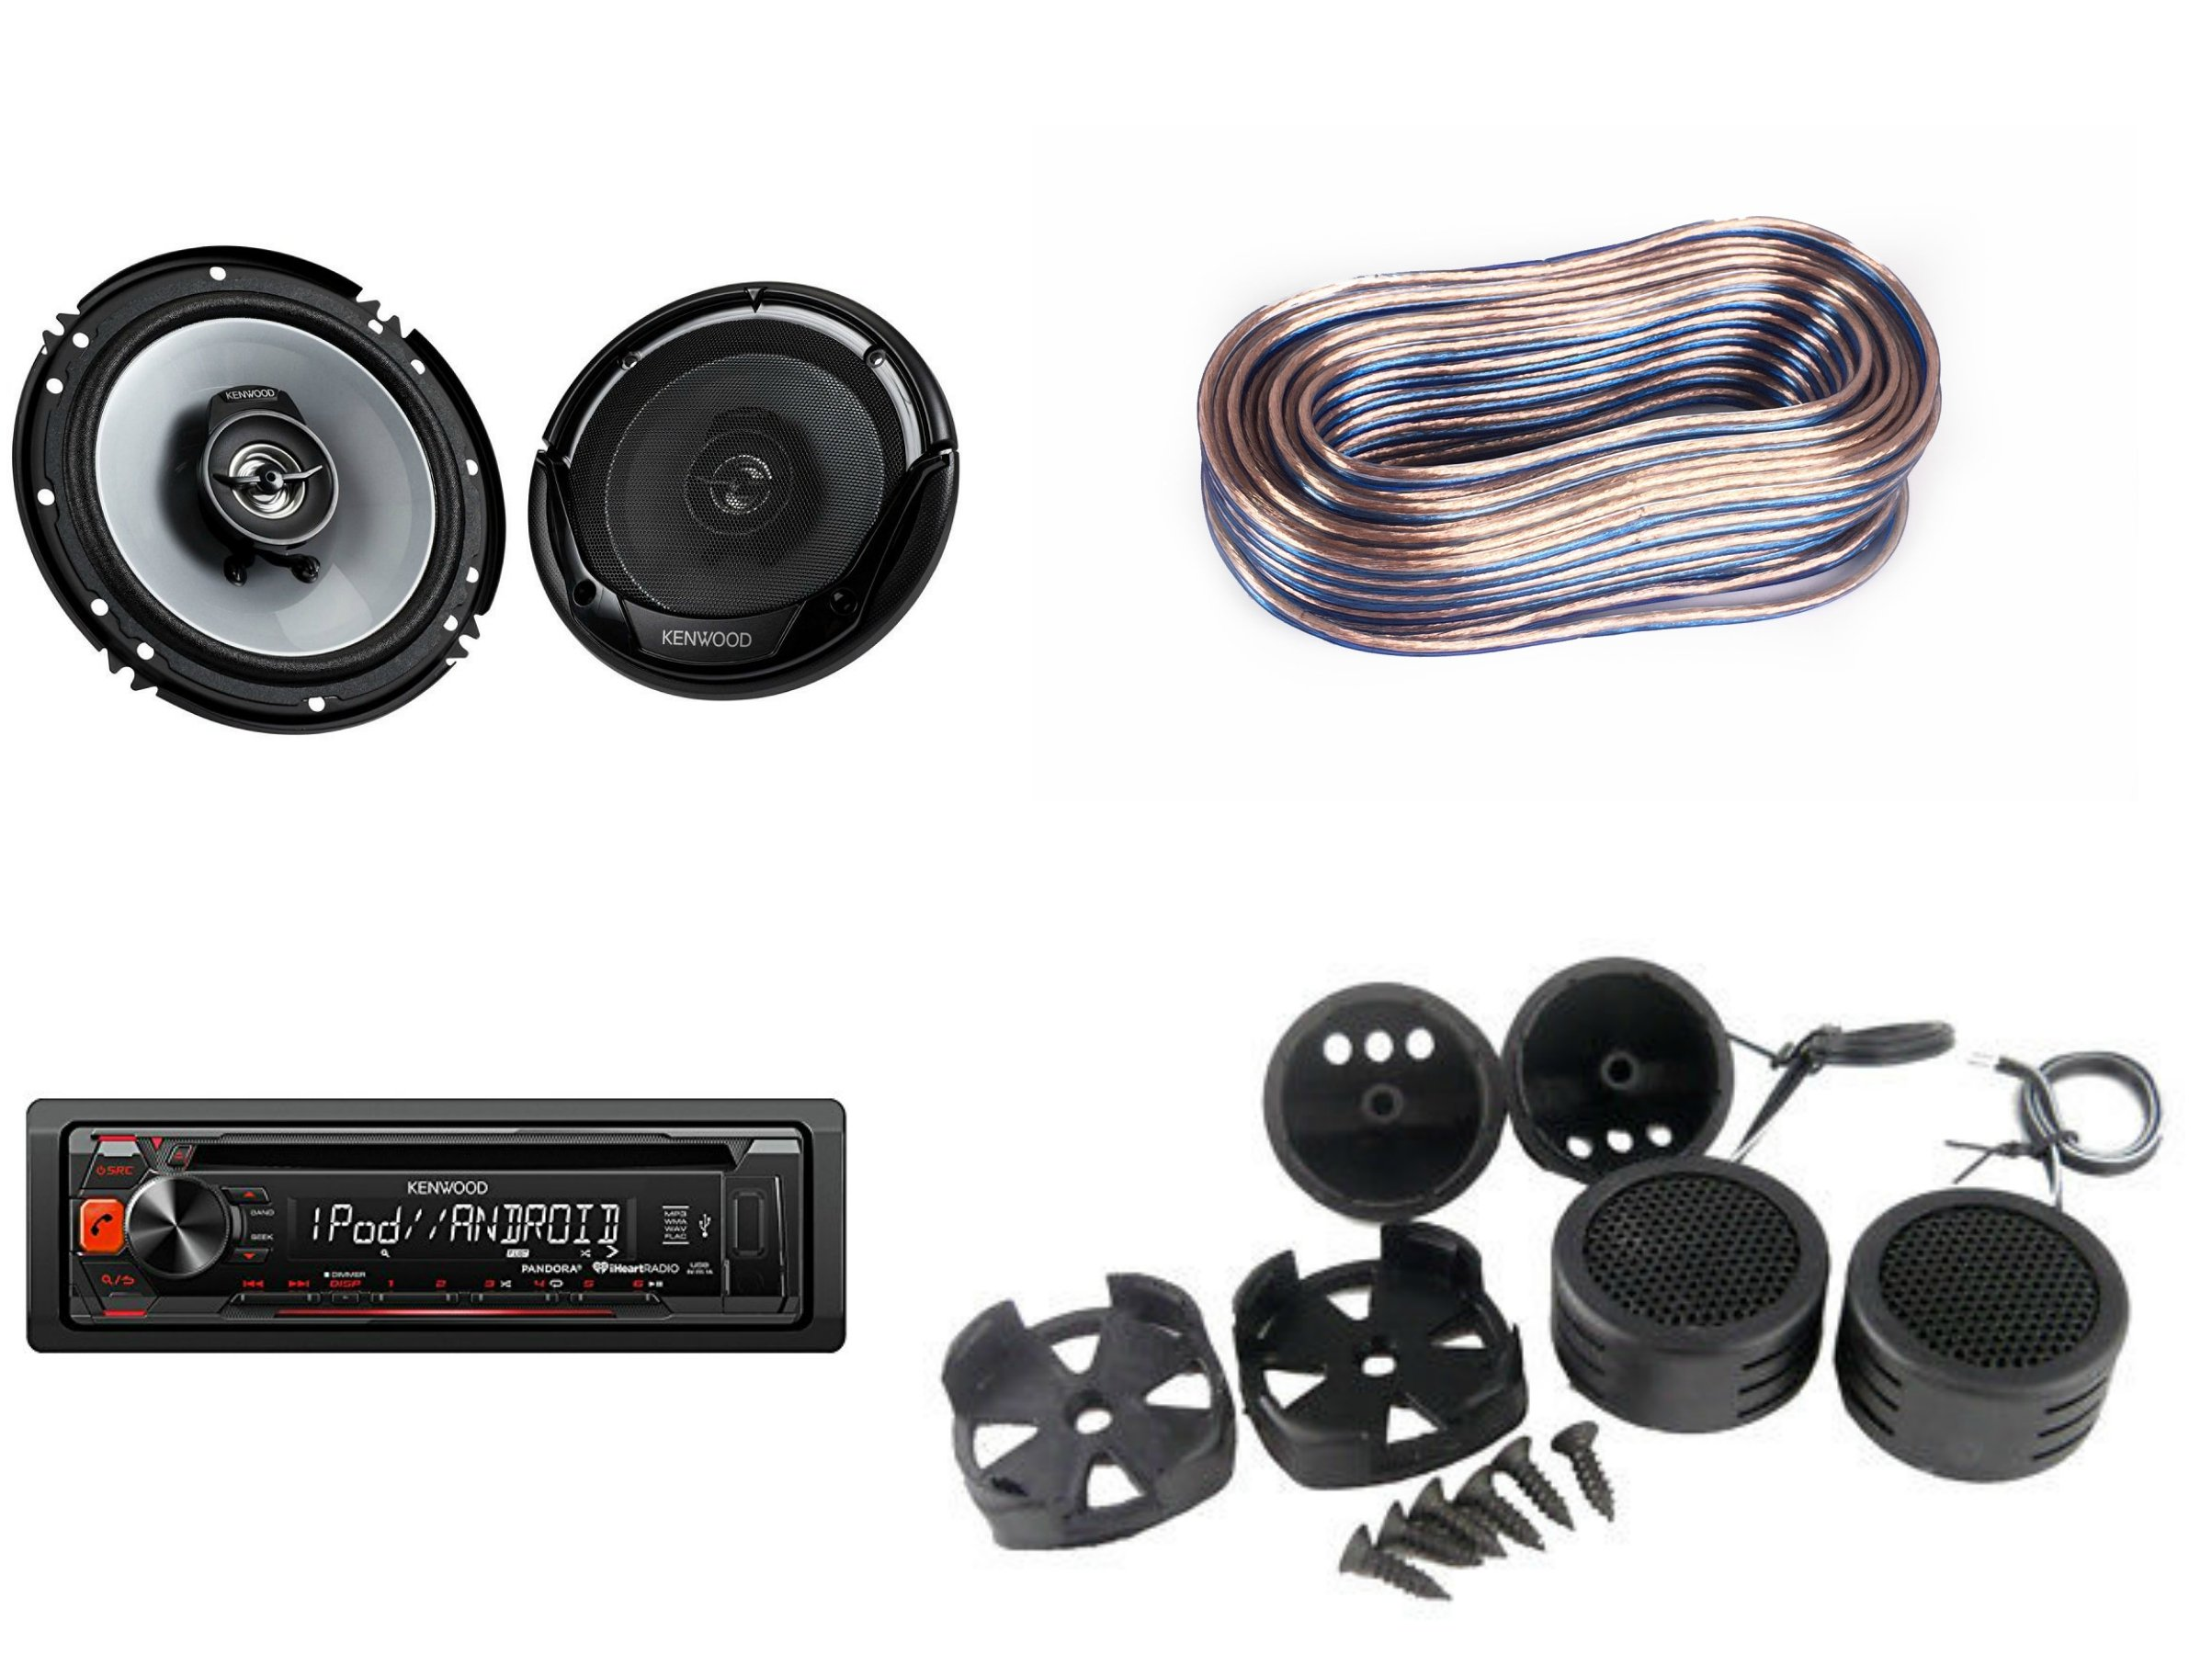 PACKAGE- PACKAGE- Kenwood KDCBT265U CD Receiver + (2) Kenwood KFC-1665S 300-Watt 6.5-Inch 2-Way Speakers + AB-204TW 300W Tweeter + 18 Gauge 100FT Speaker Wire